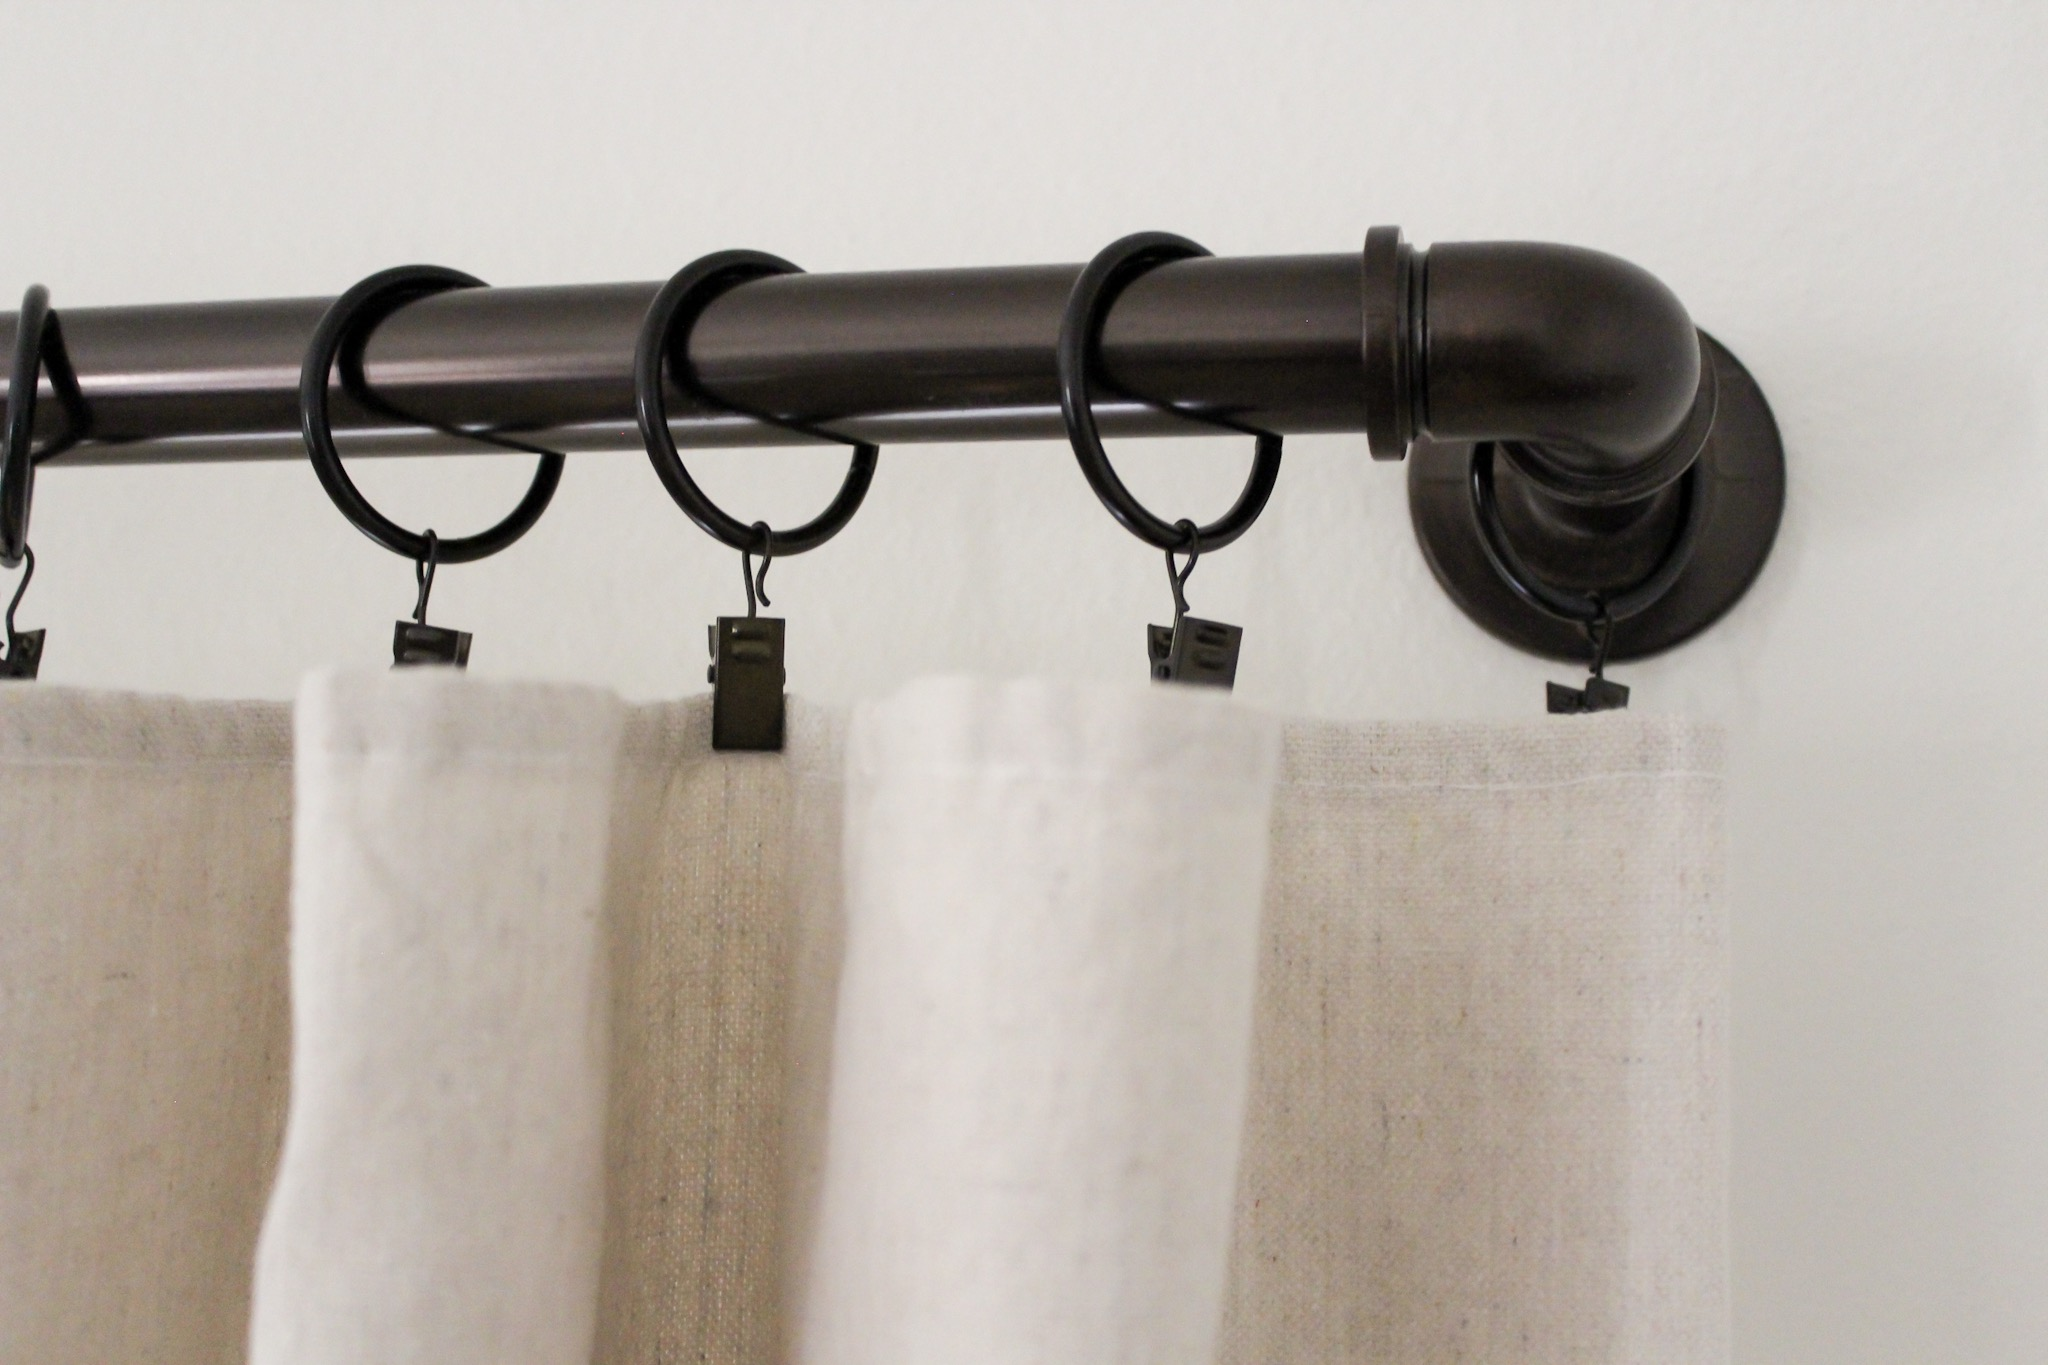 Cafe Curtain Clips Diy No Sew Drop Cloth Curtains Beauty For Ashes